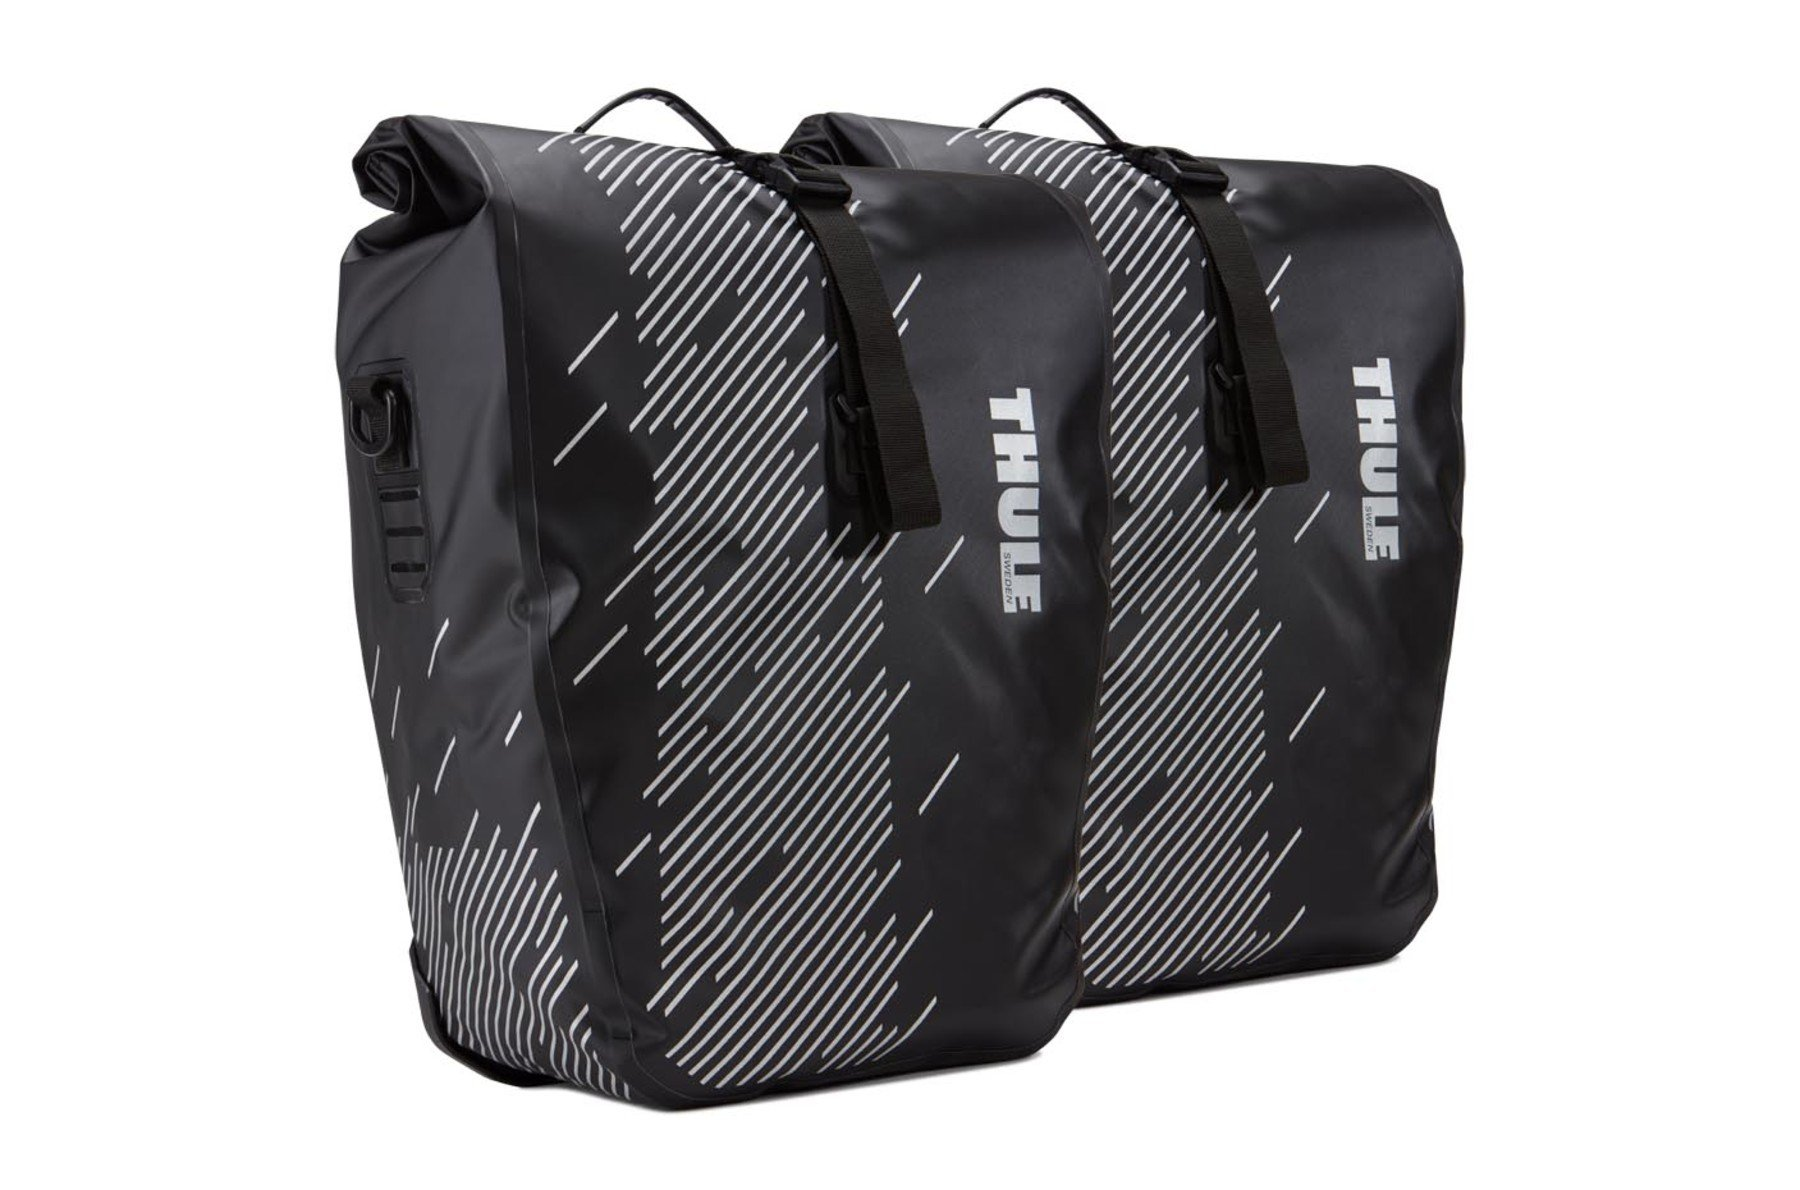 THULE_SHIELD_PANNIER_L_01